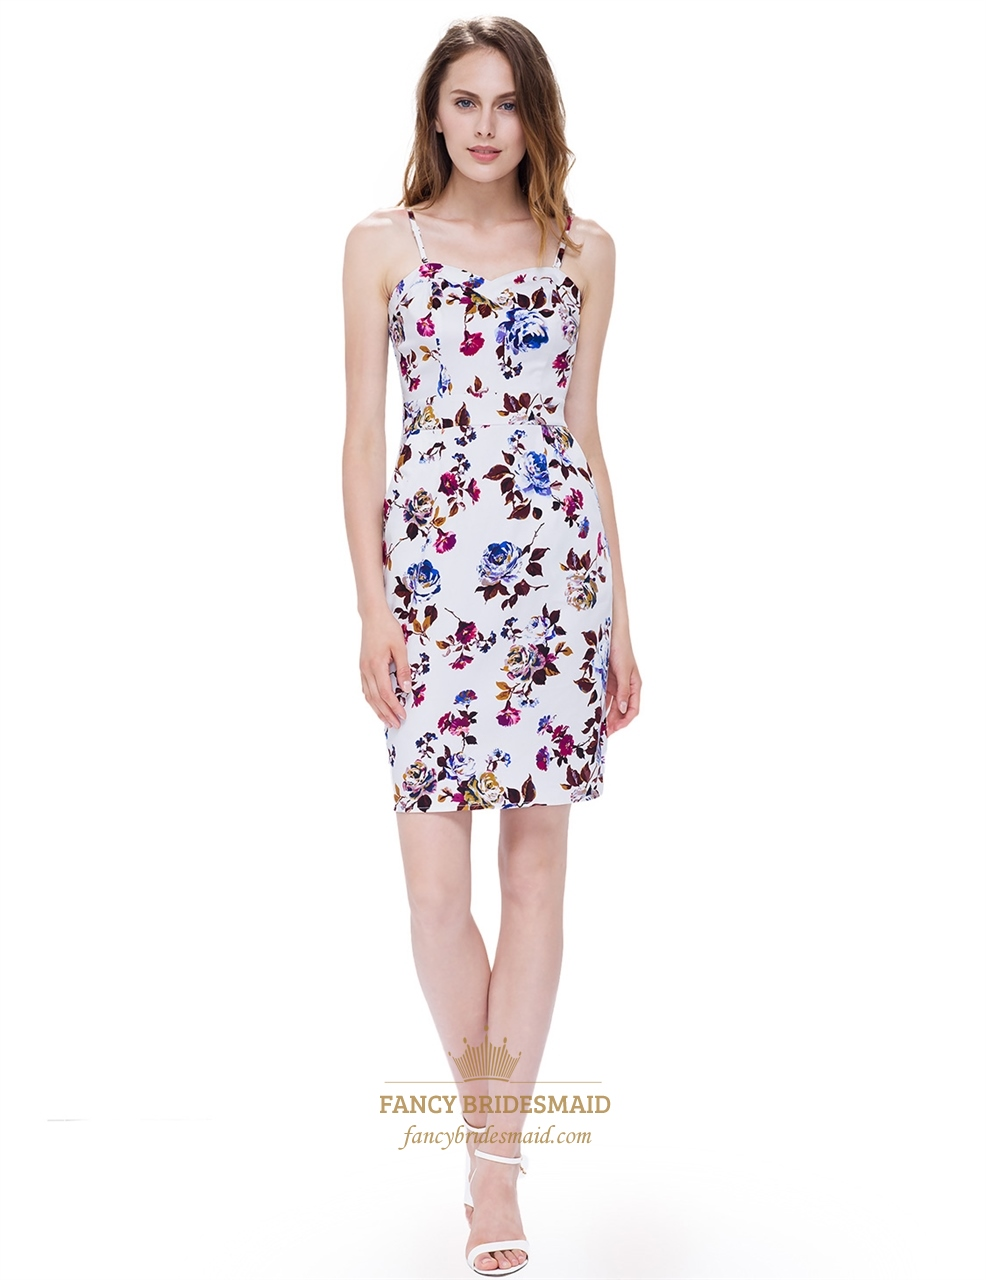 890716bd17 Strapless Sleeveless Floral Bodycon Dress Short With Removable Straps